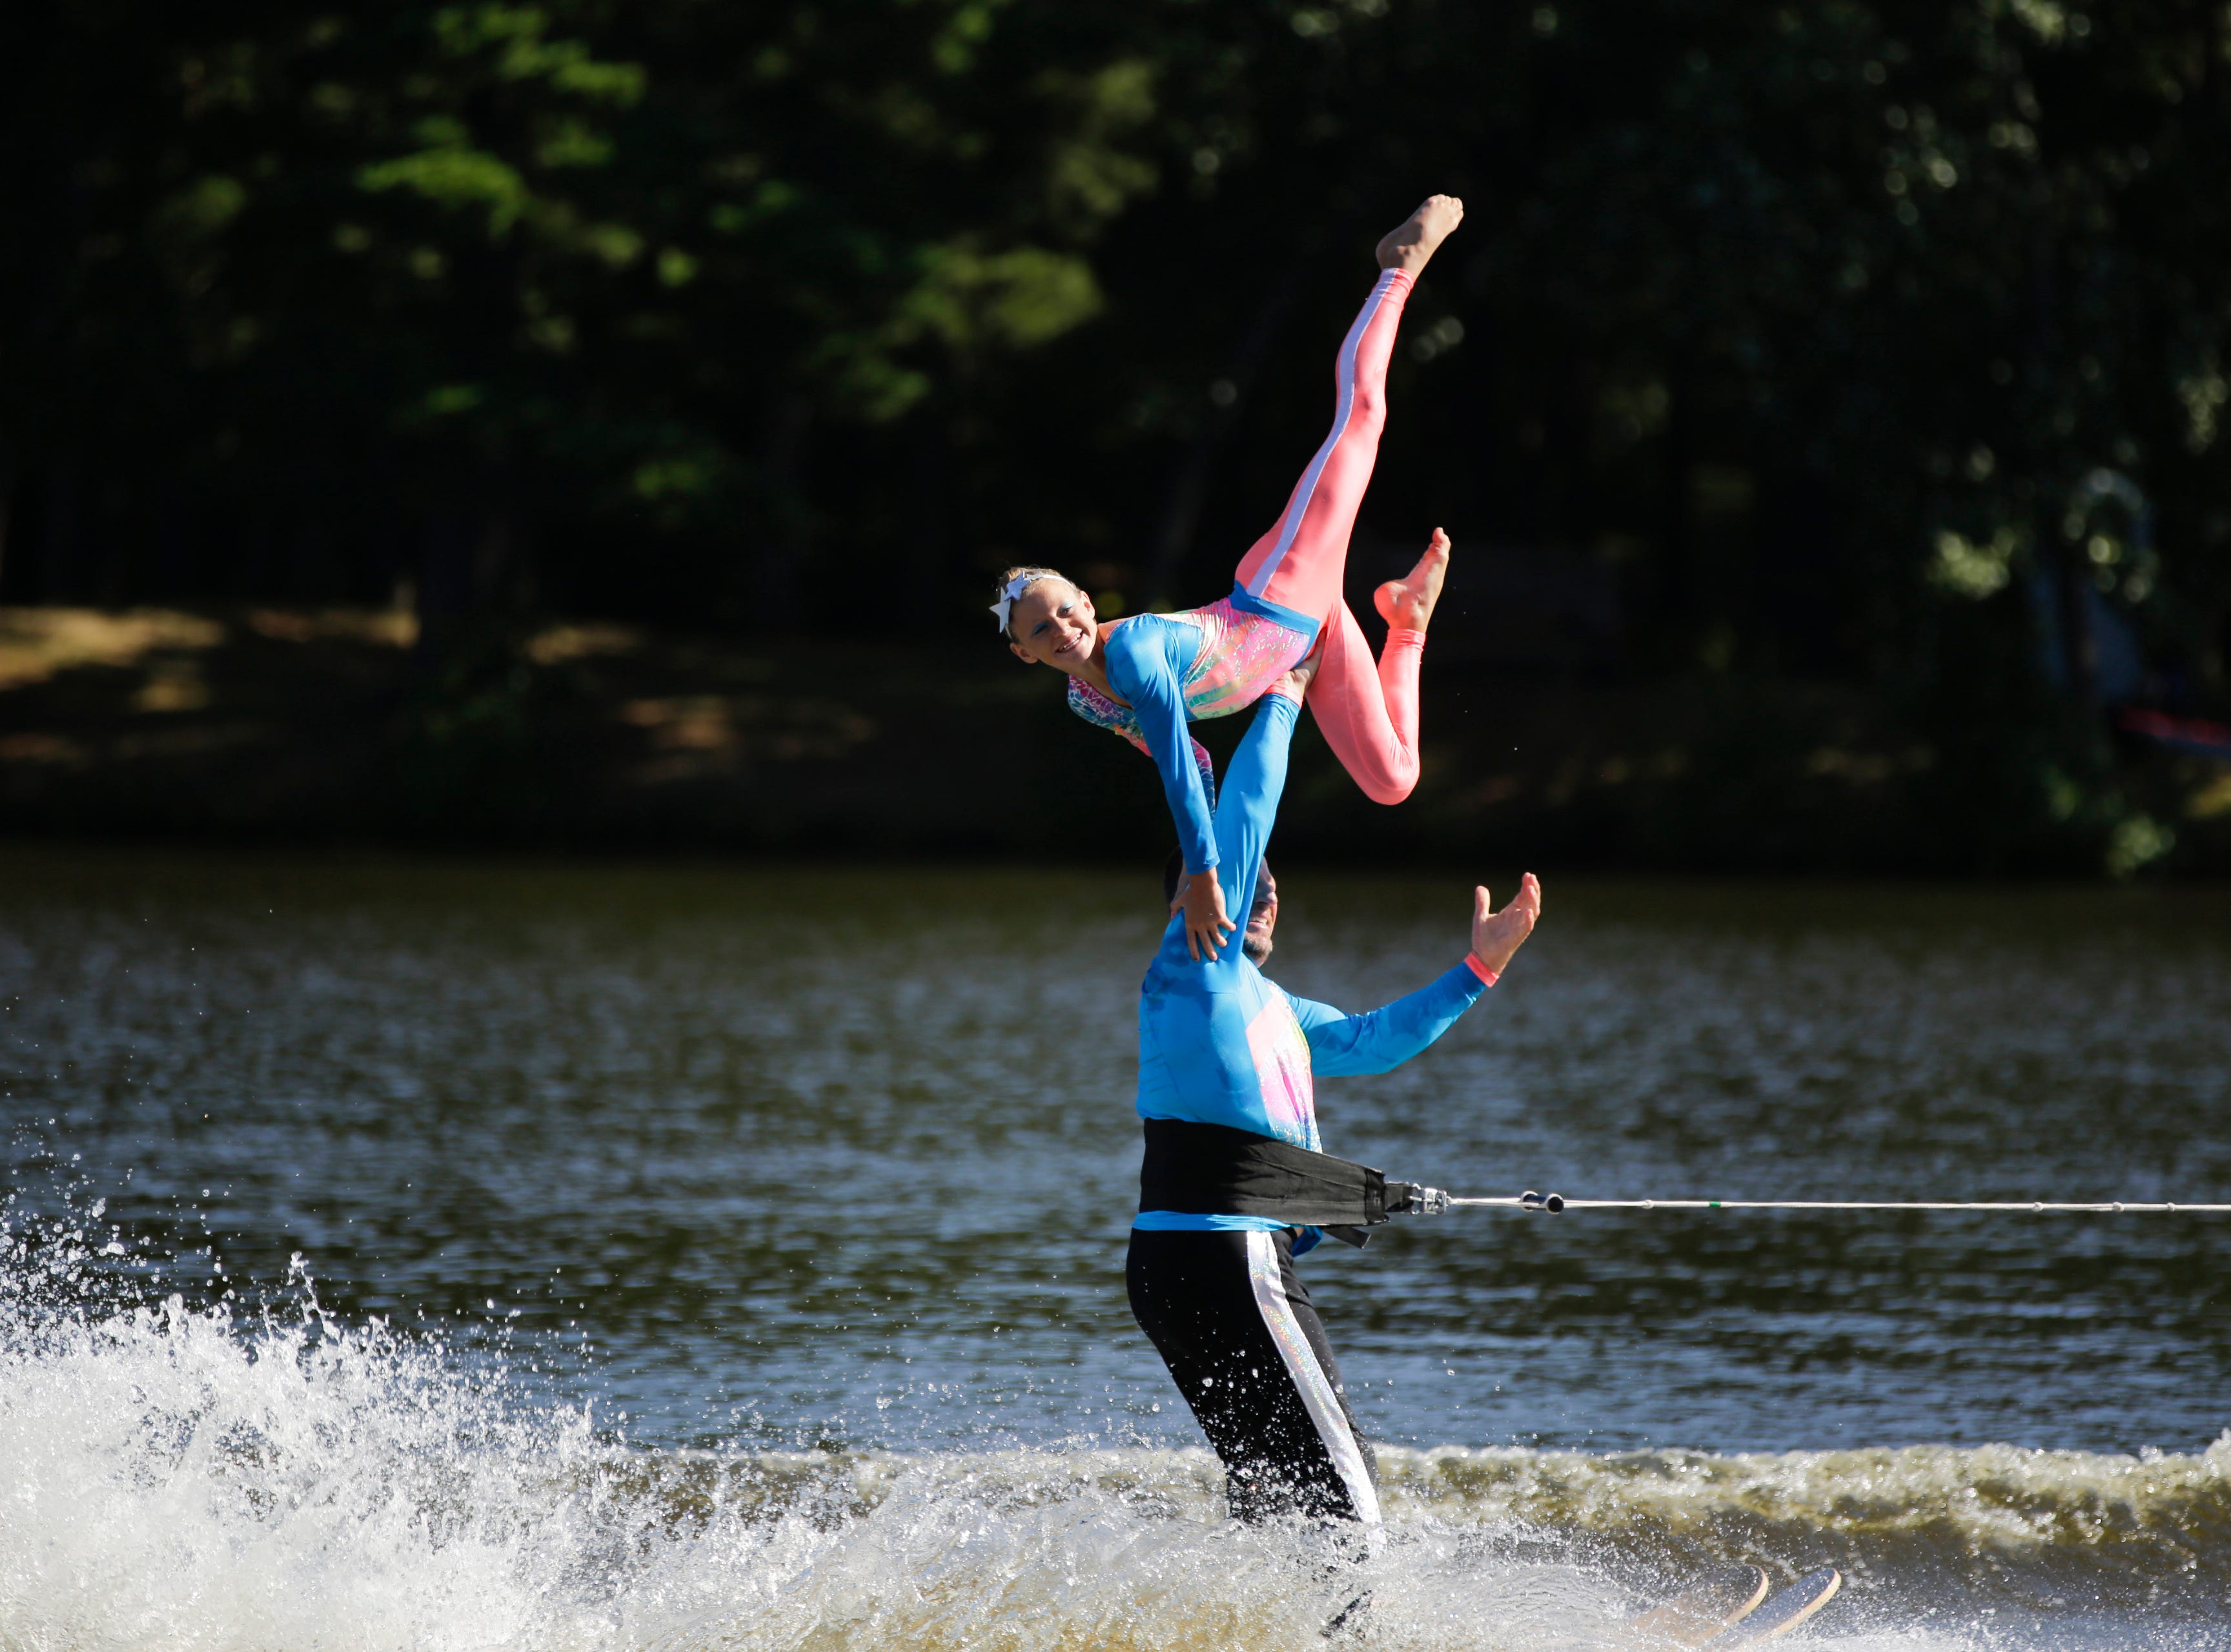 Bear and Sarah Fiedorowicz compete in the doubles category during the Wisconsin State Water Ski Show Championships on Lake Wazeecha in Kellner Thursday, July 19, 2018.